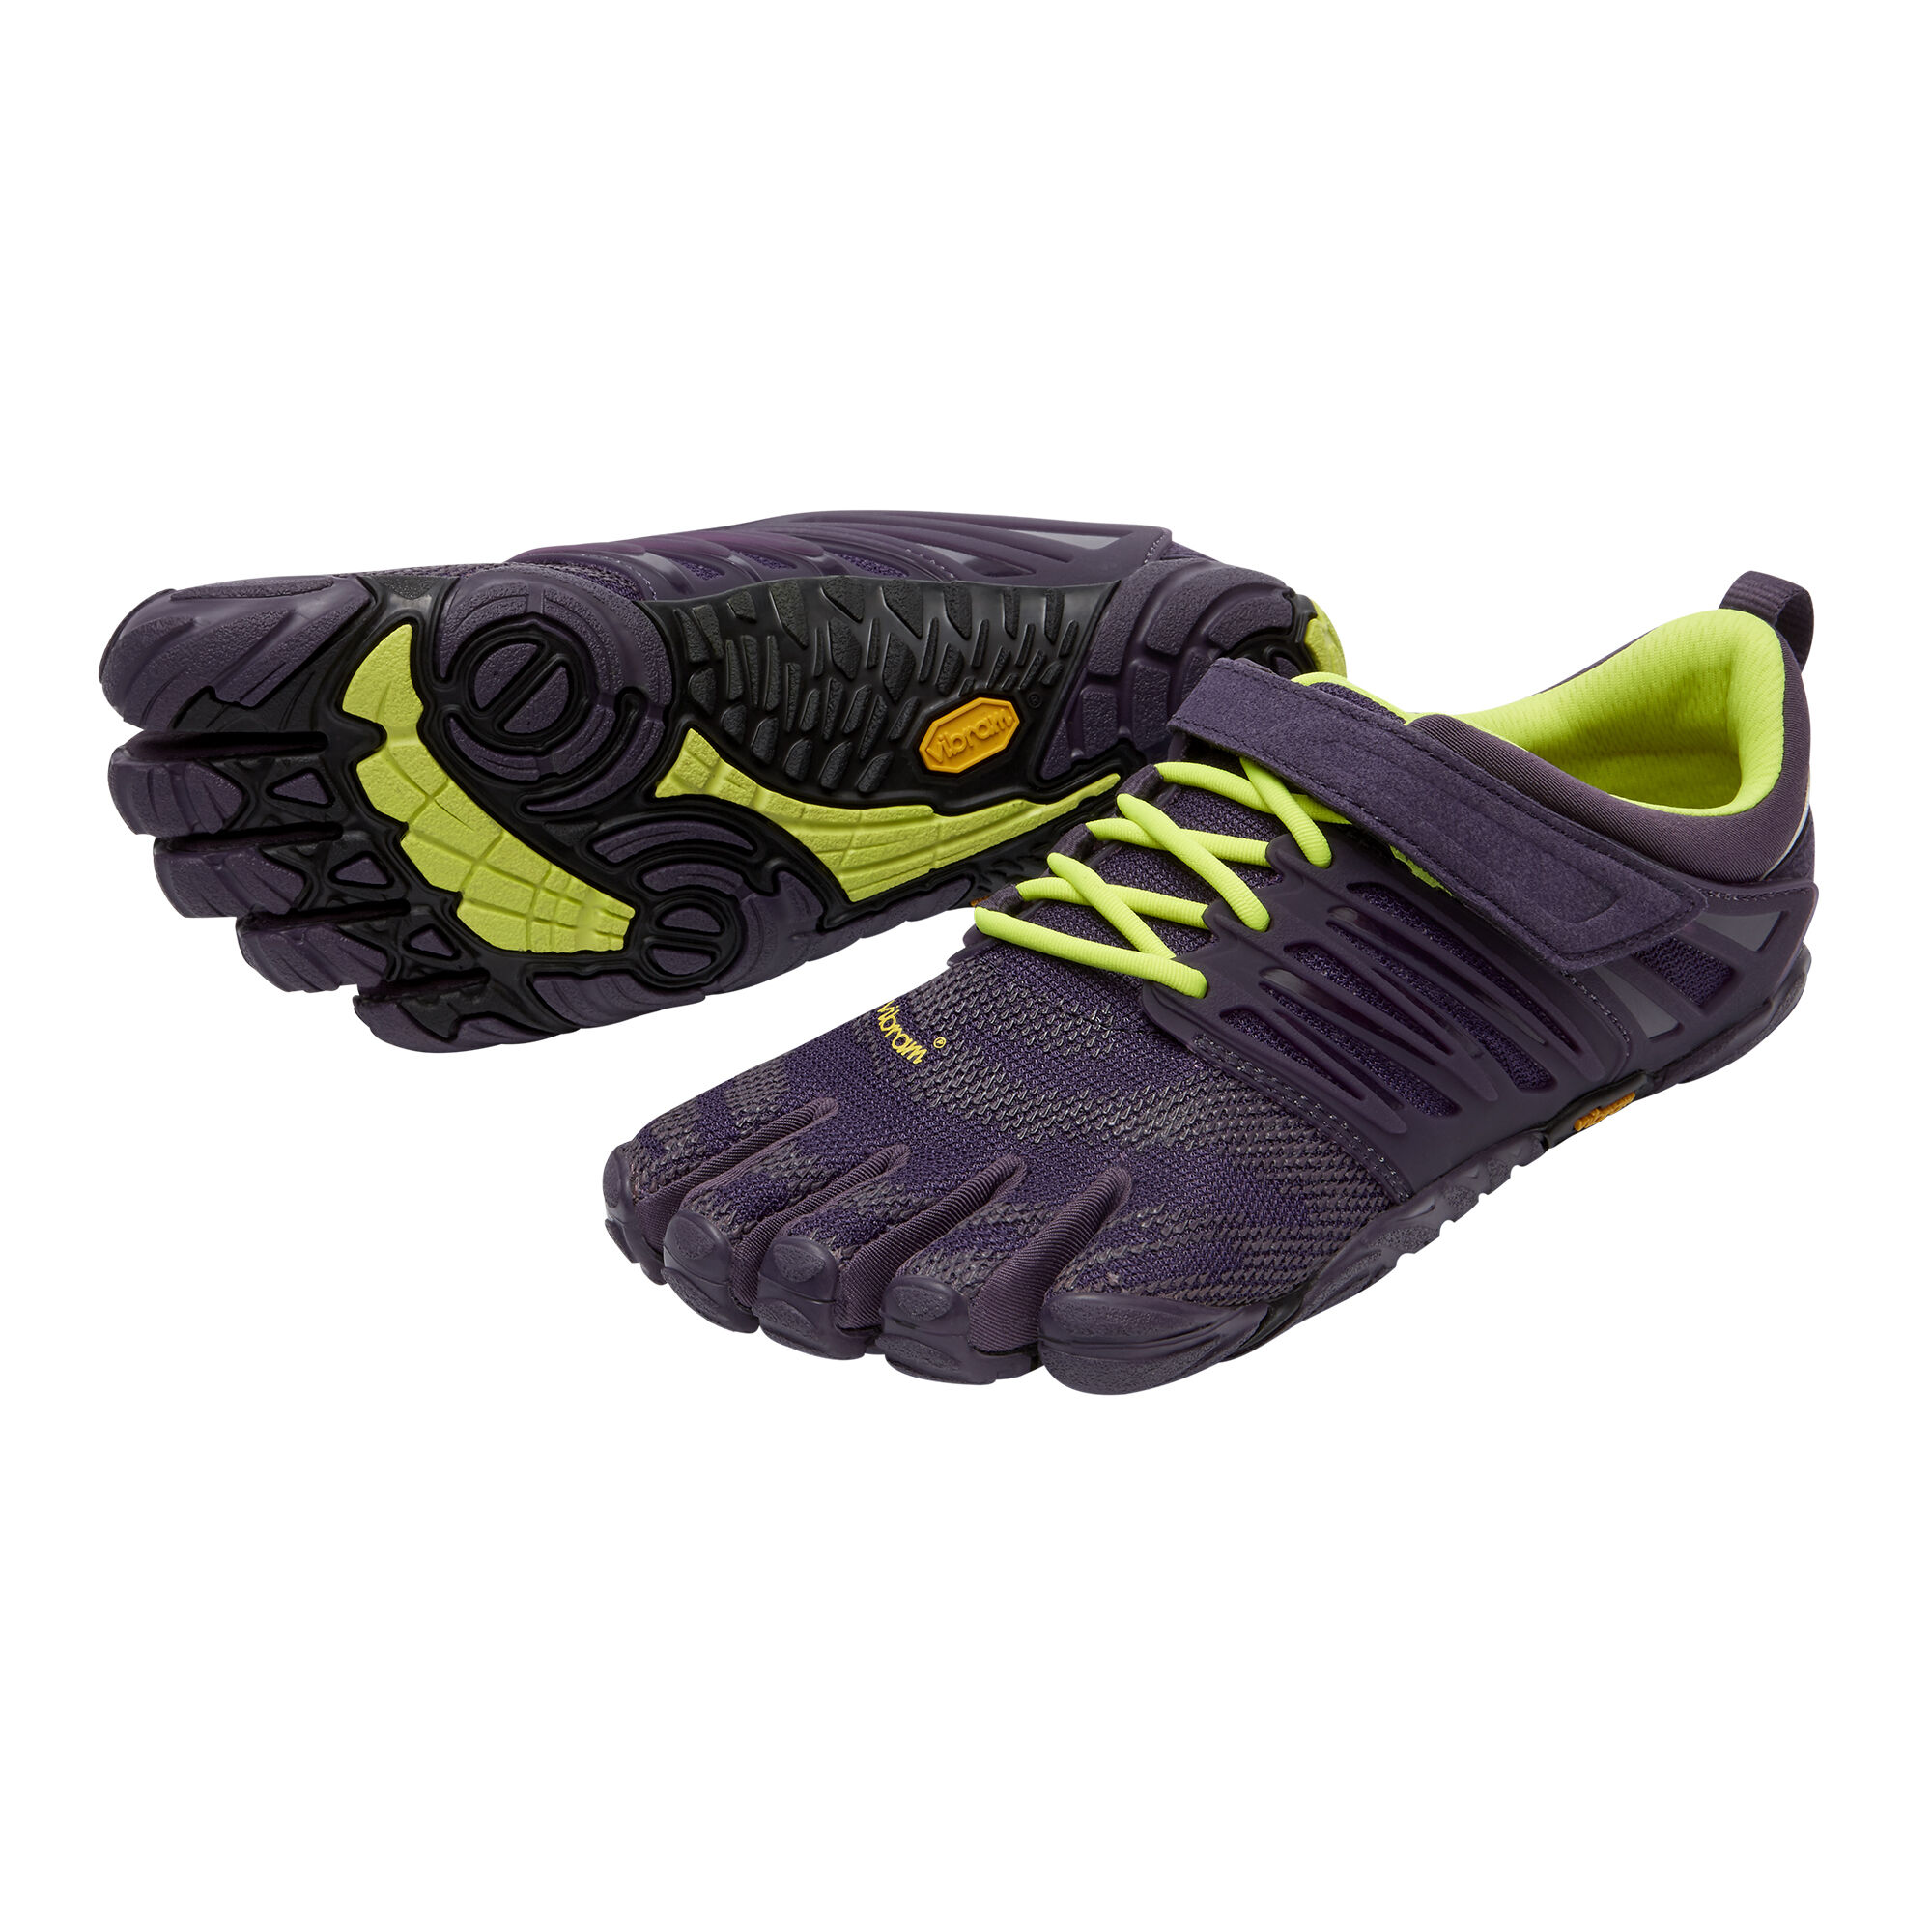 Vibram Fivefingers V-TRAIN - Sports shoes Nightshade/Safety Yellow Women